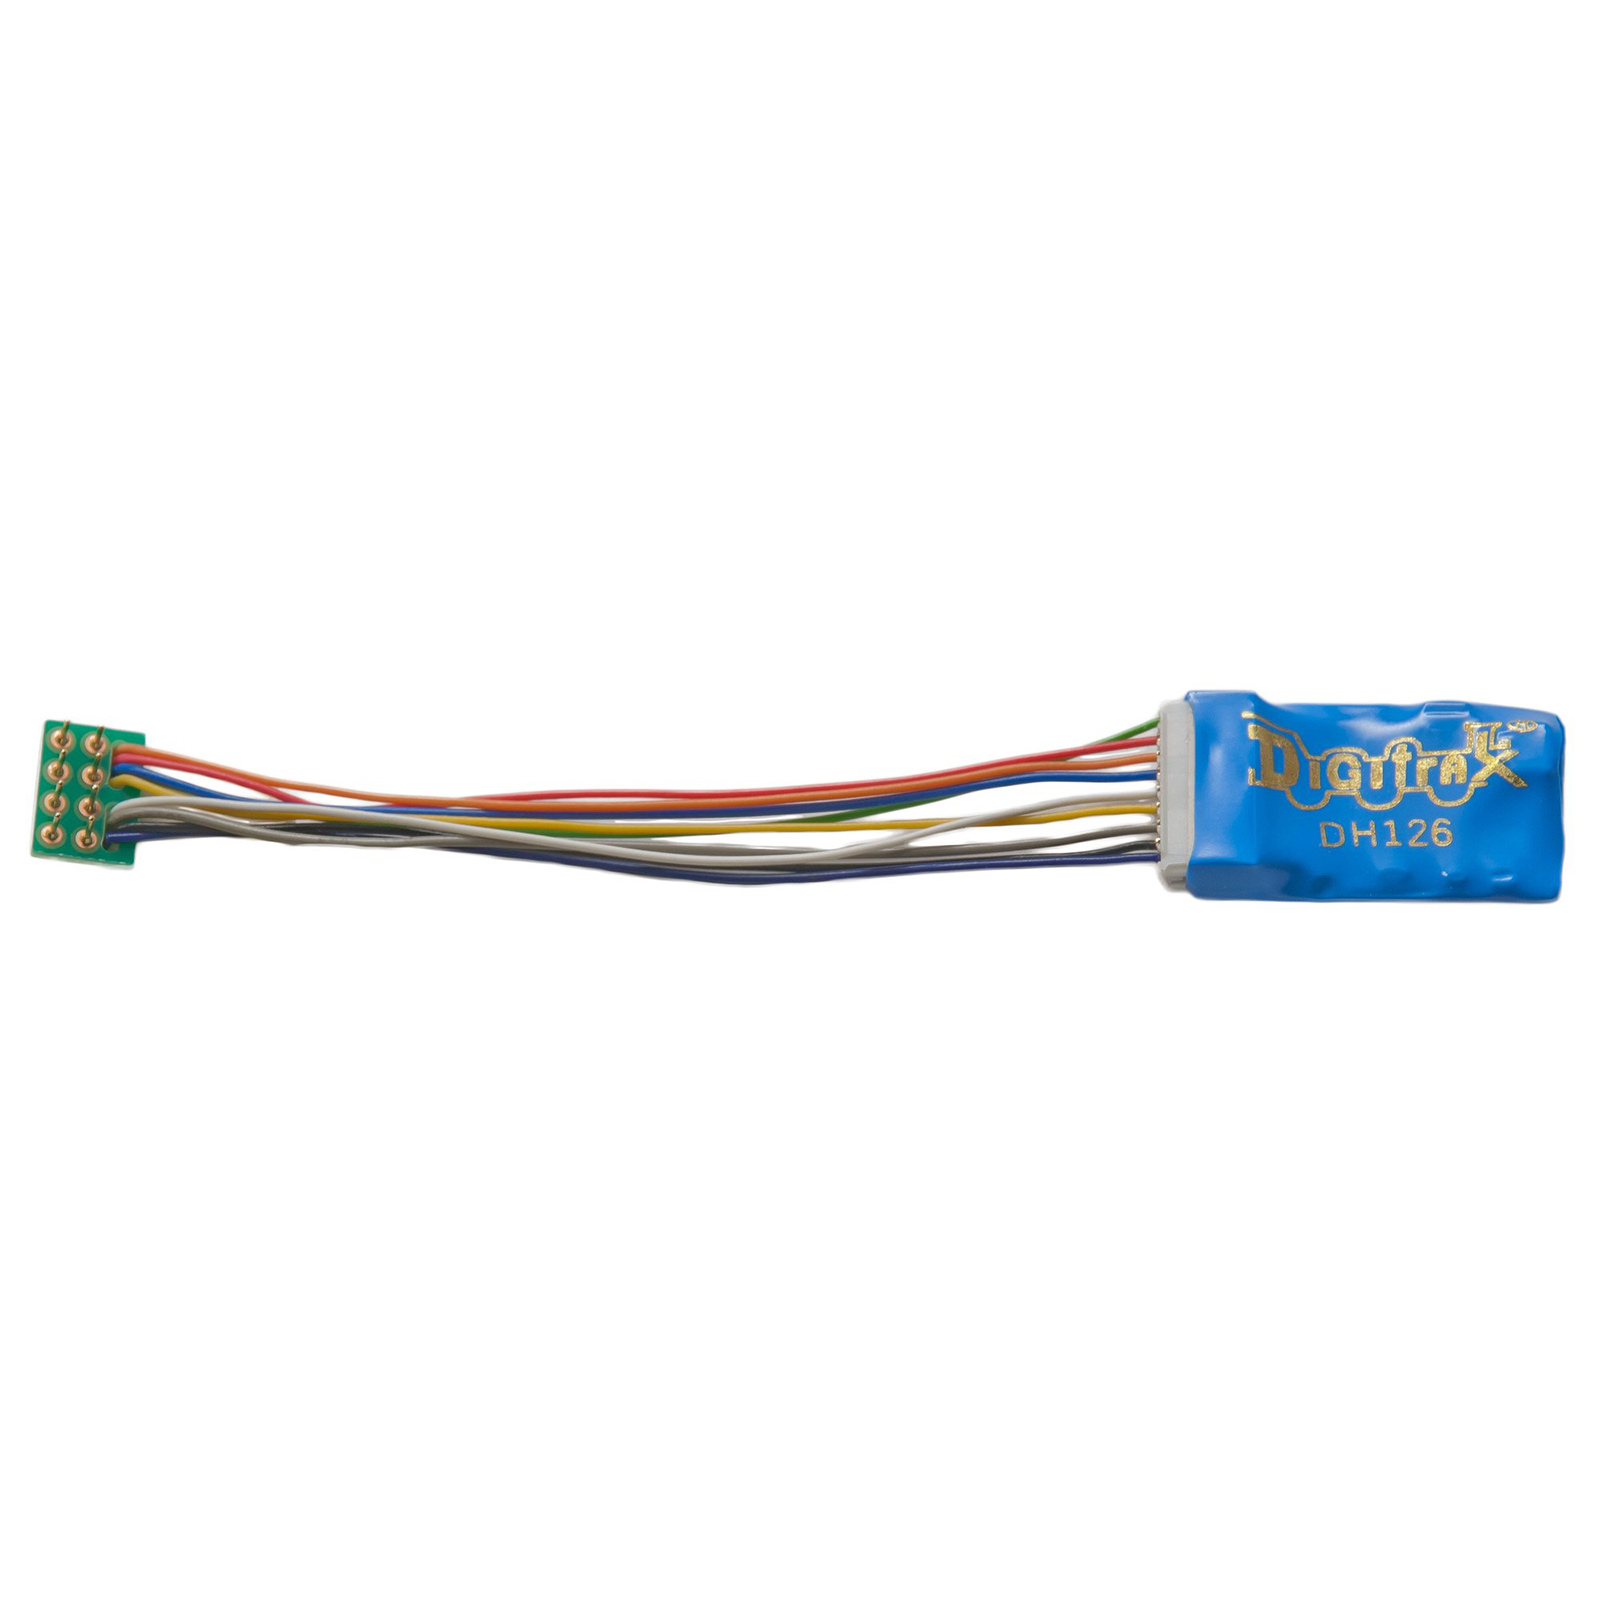 86130_R-1  Pin Wire Harness on fd620d, pin tool, for steiger, car stereo, cable assembly,